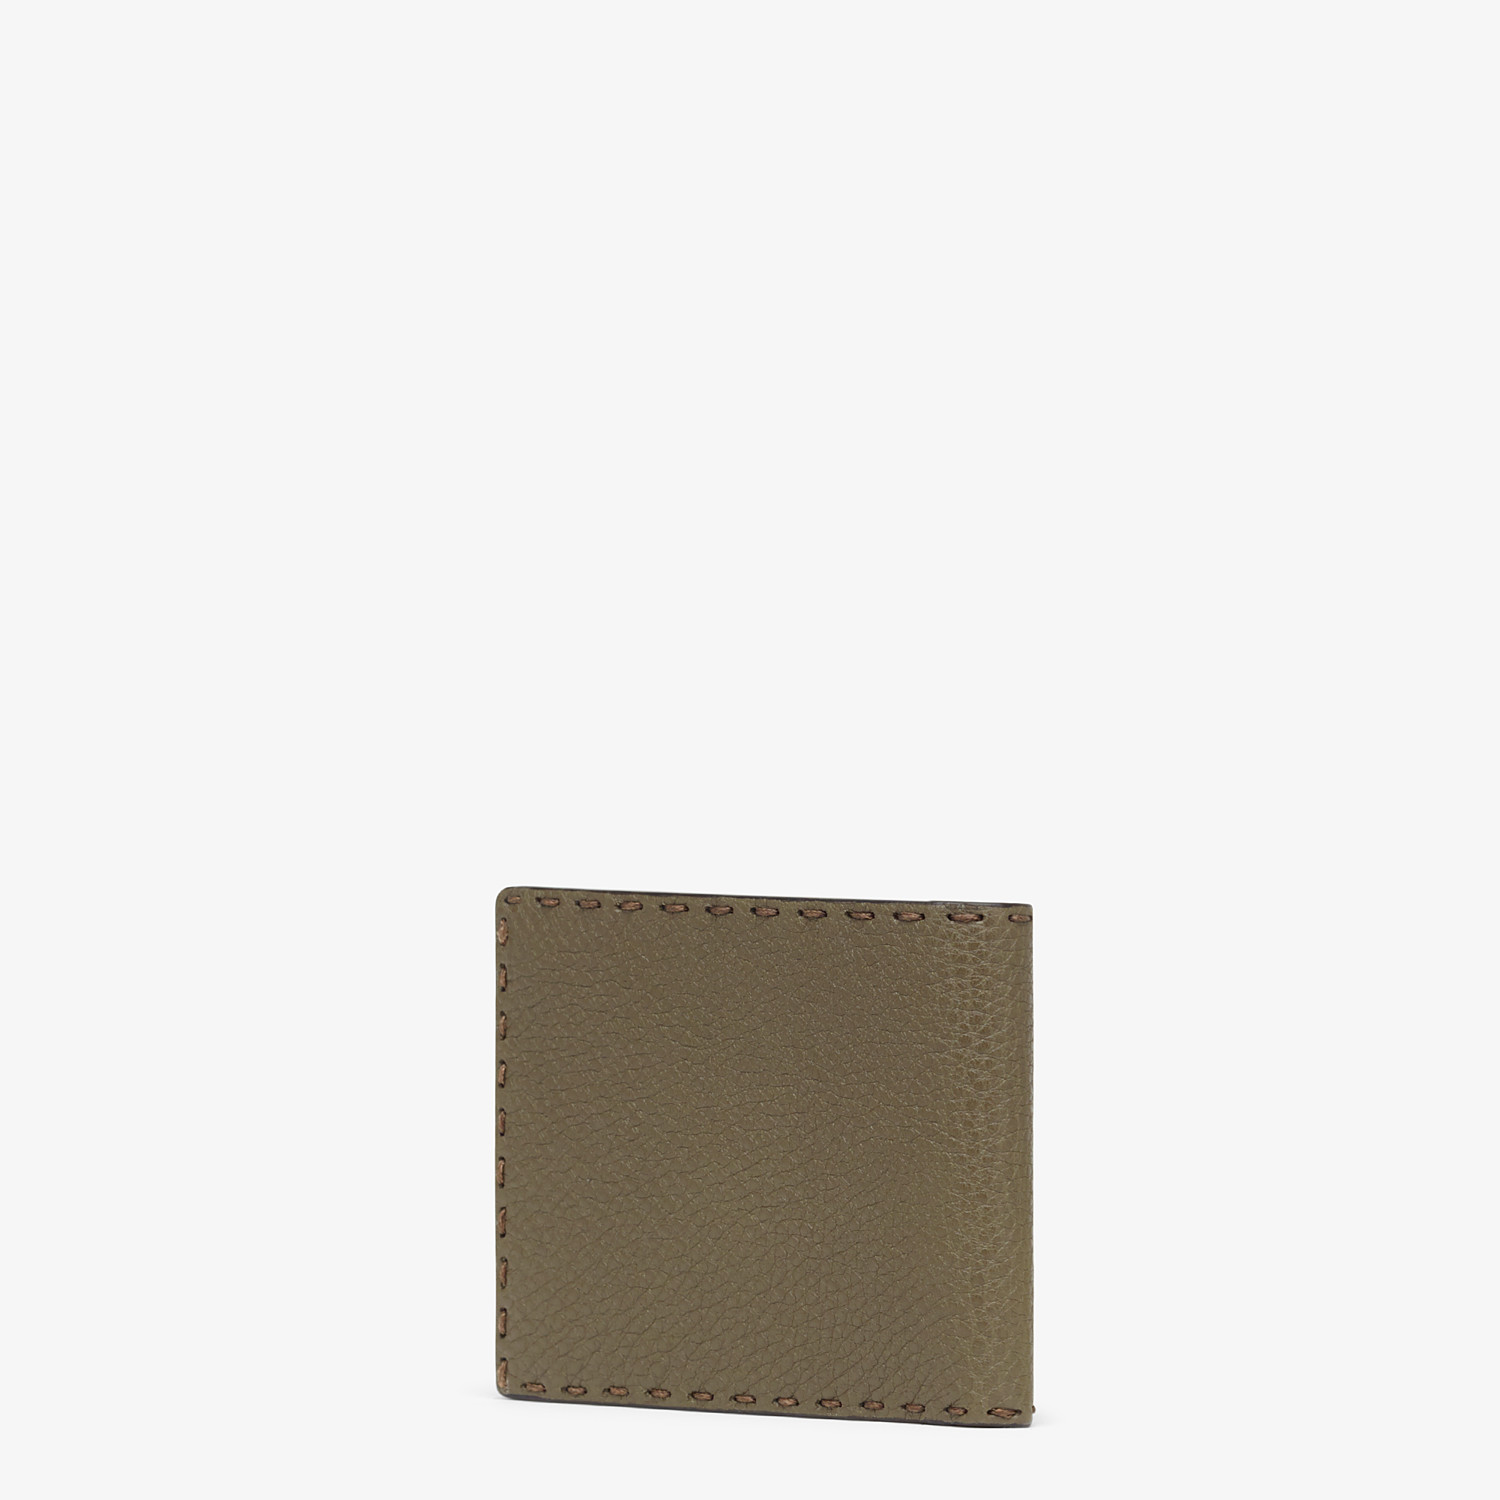 FENDI WALLET - Green leather bi-fold wallet - view 2 detail